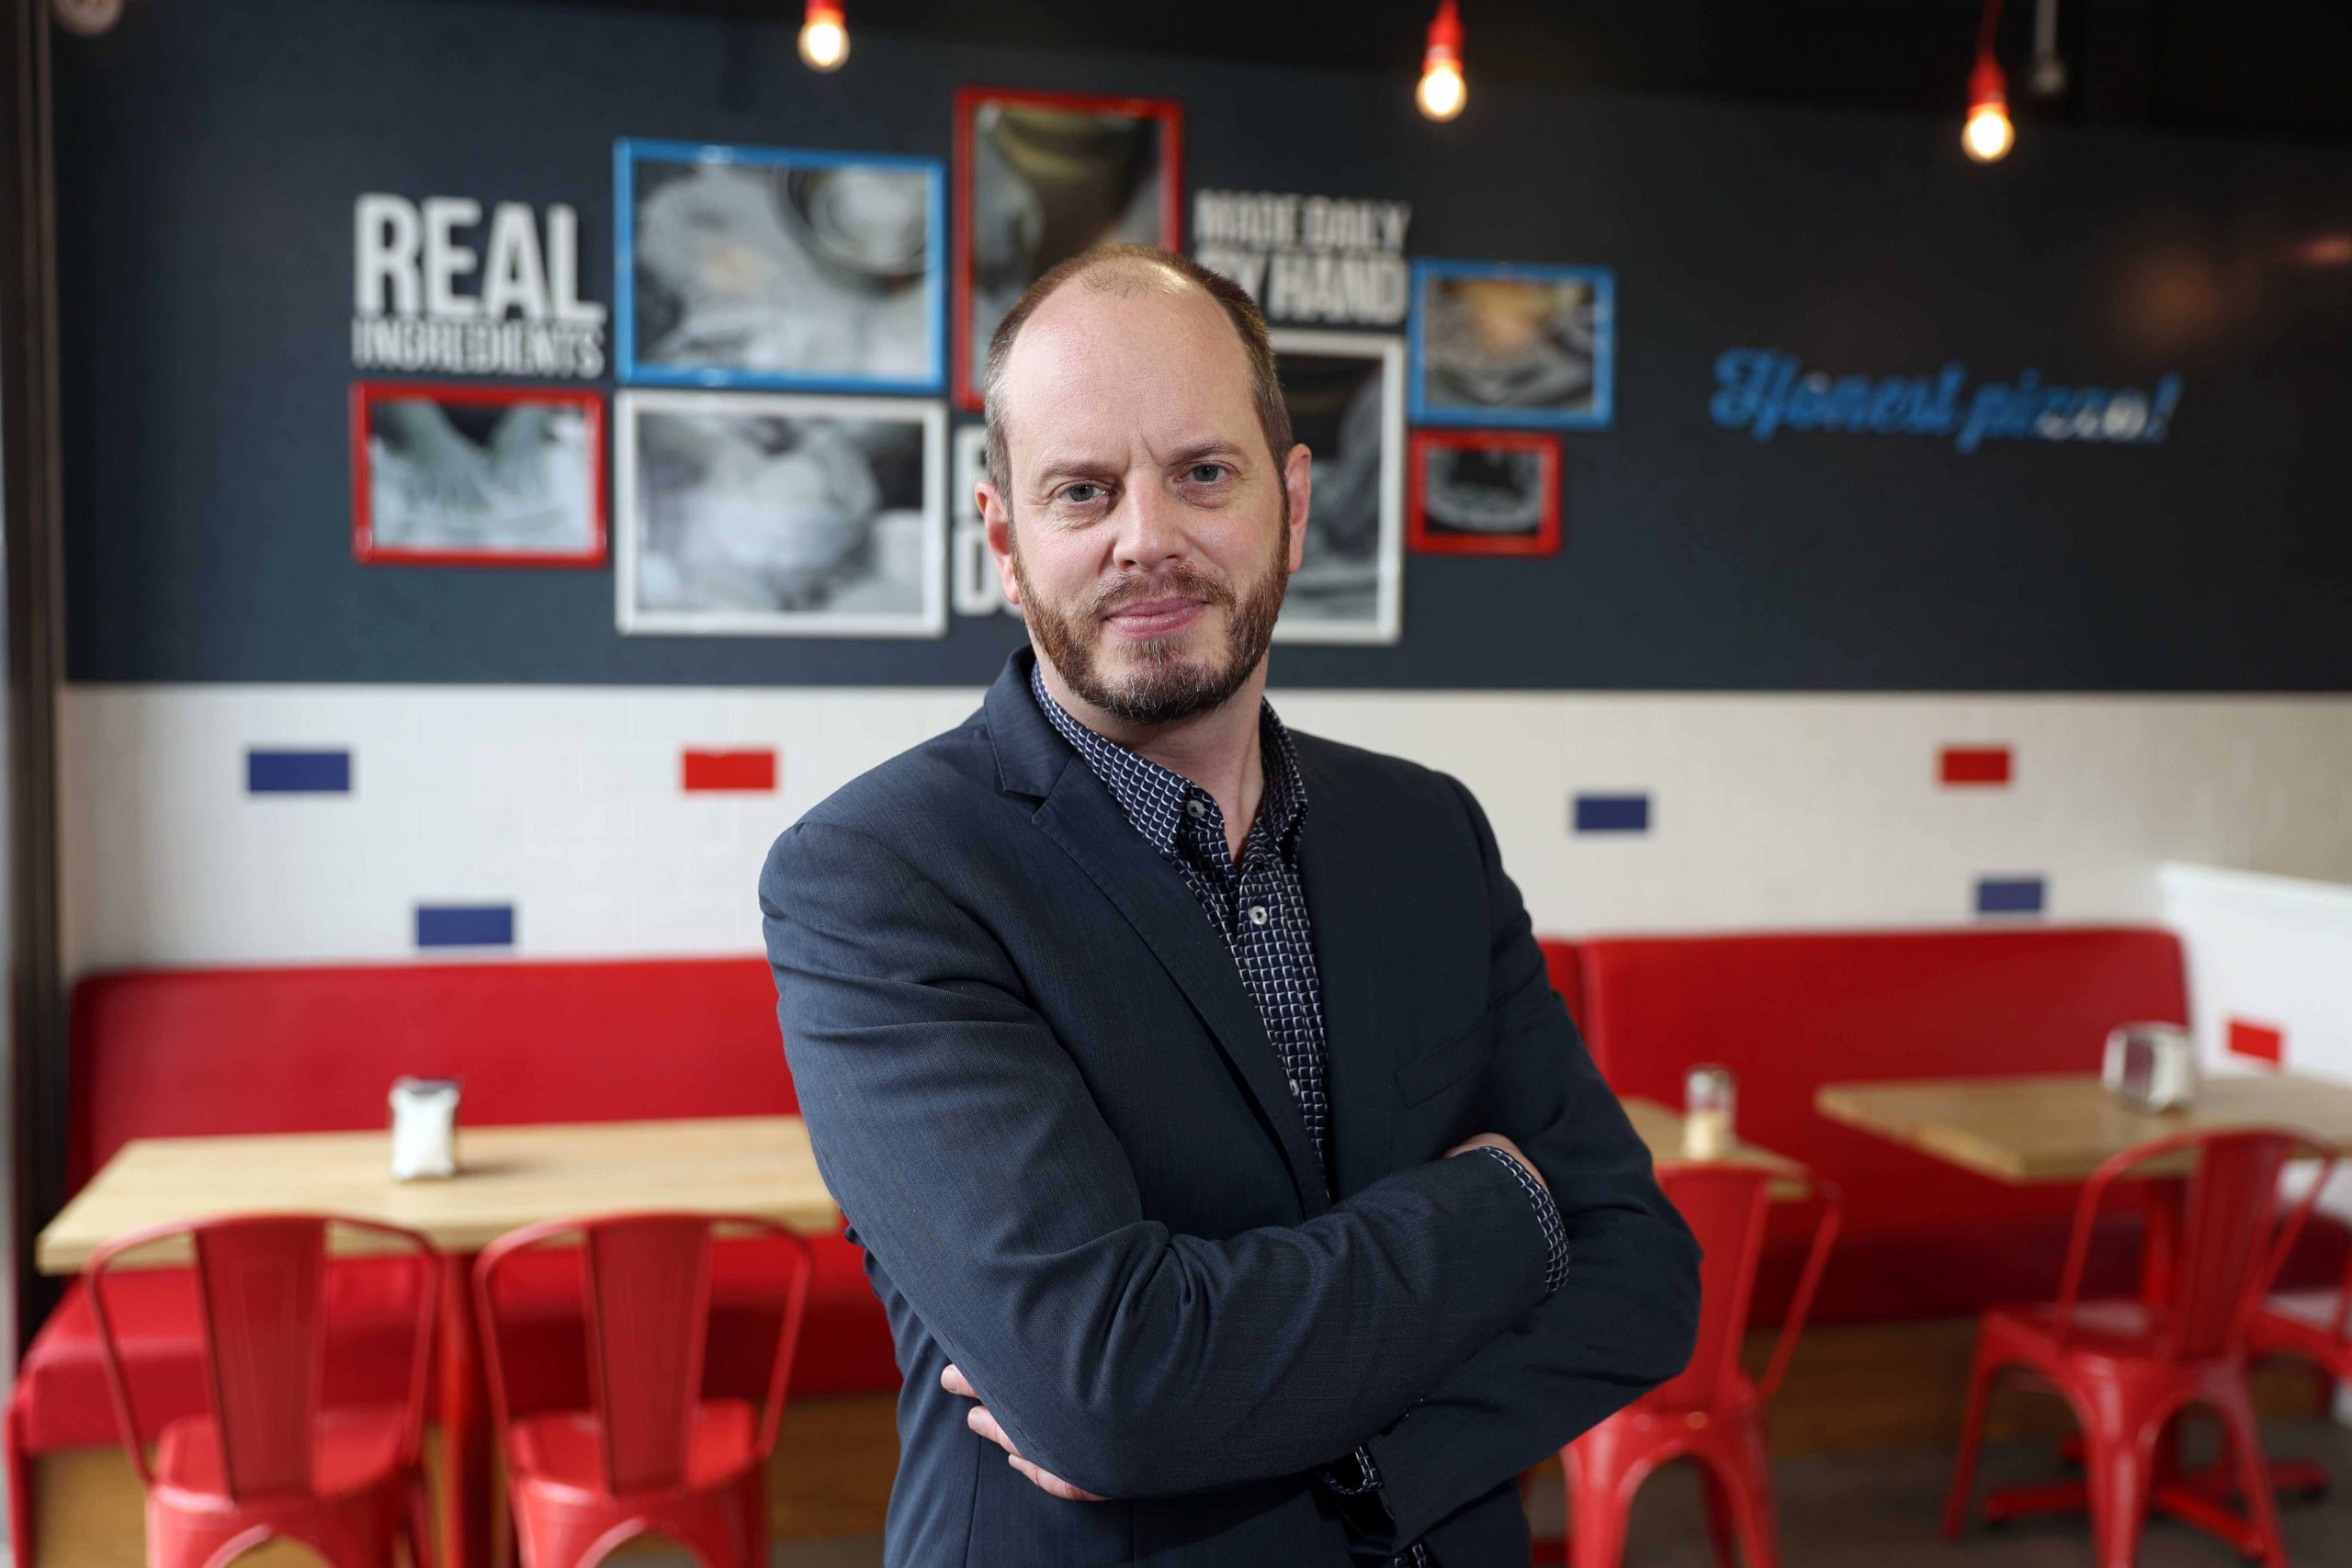 Online sales deliver growth for Four Star Pizza